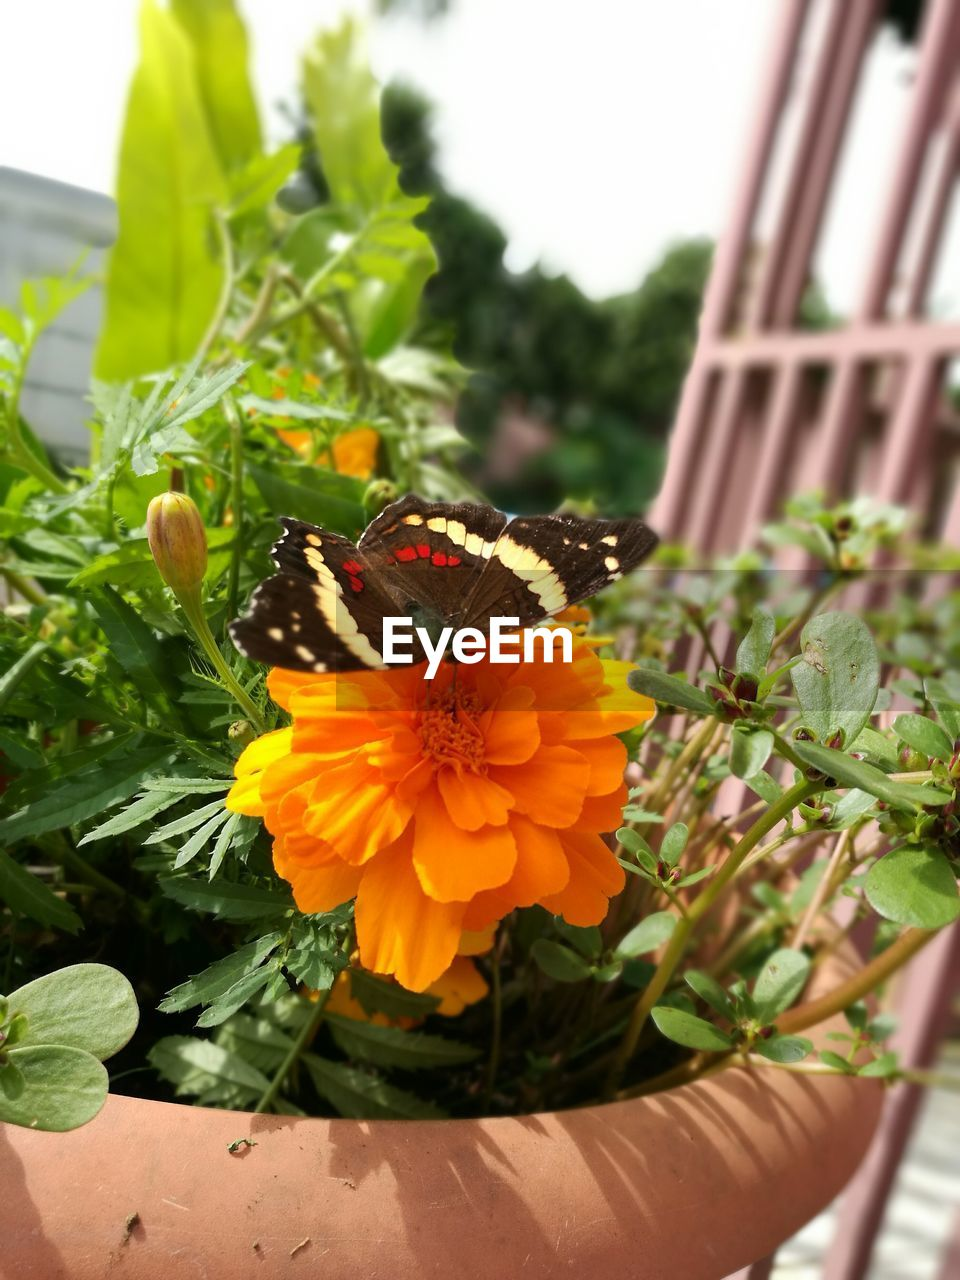 flower, plant, fragility, insect, nature, beauty in nature, freshness, close-up, growth, no people, petal, day, leaf, green color, outdoors, flower head, animals in the wild, animal themes